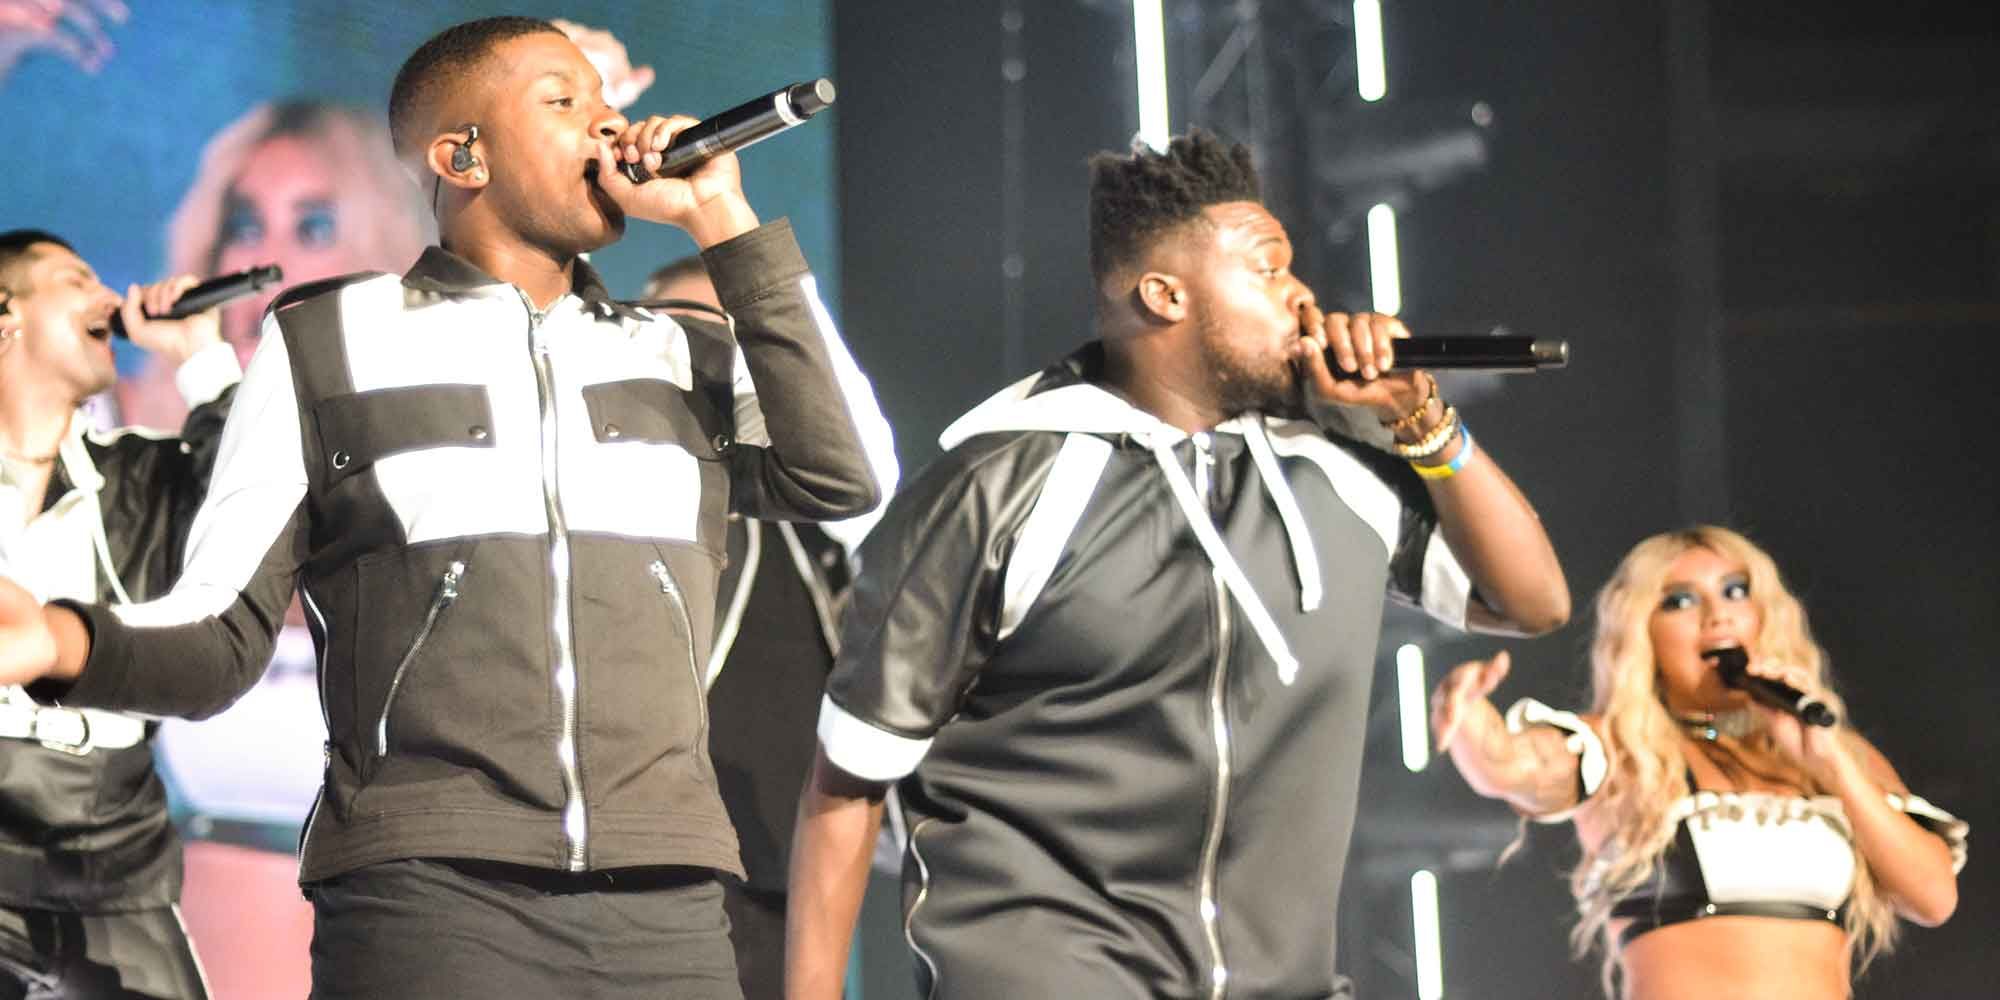 Kevin Olusola and Matt Salle of Pentatonix, Photo by Dylan Novacek